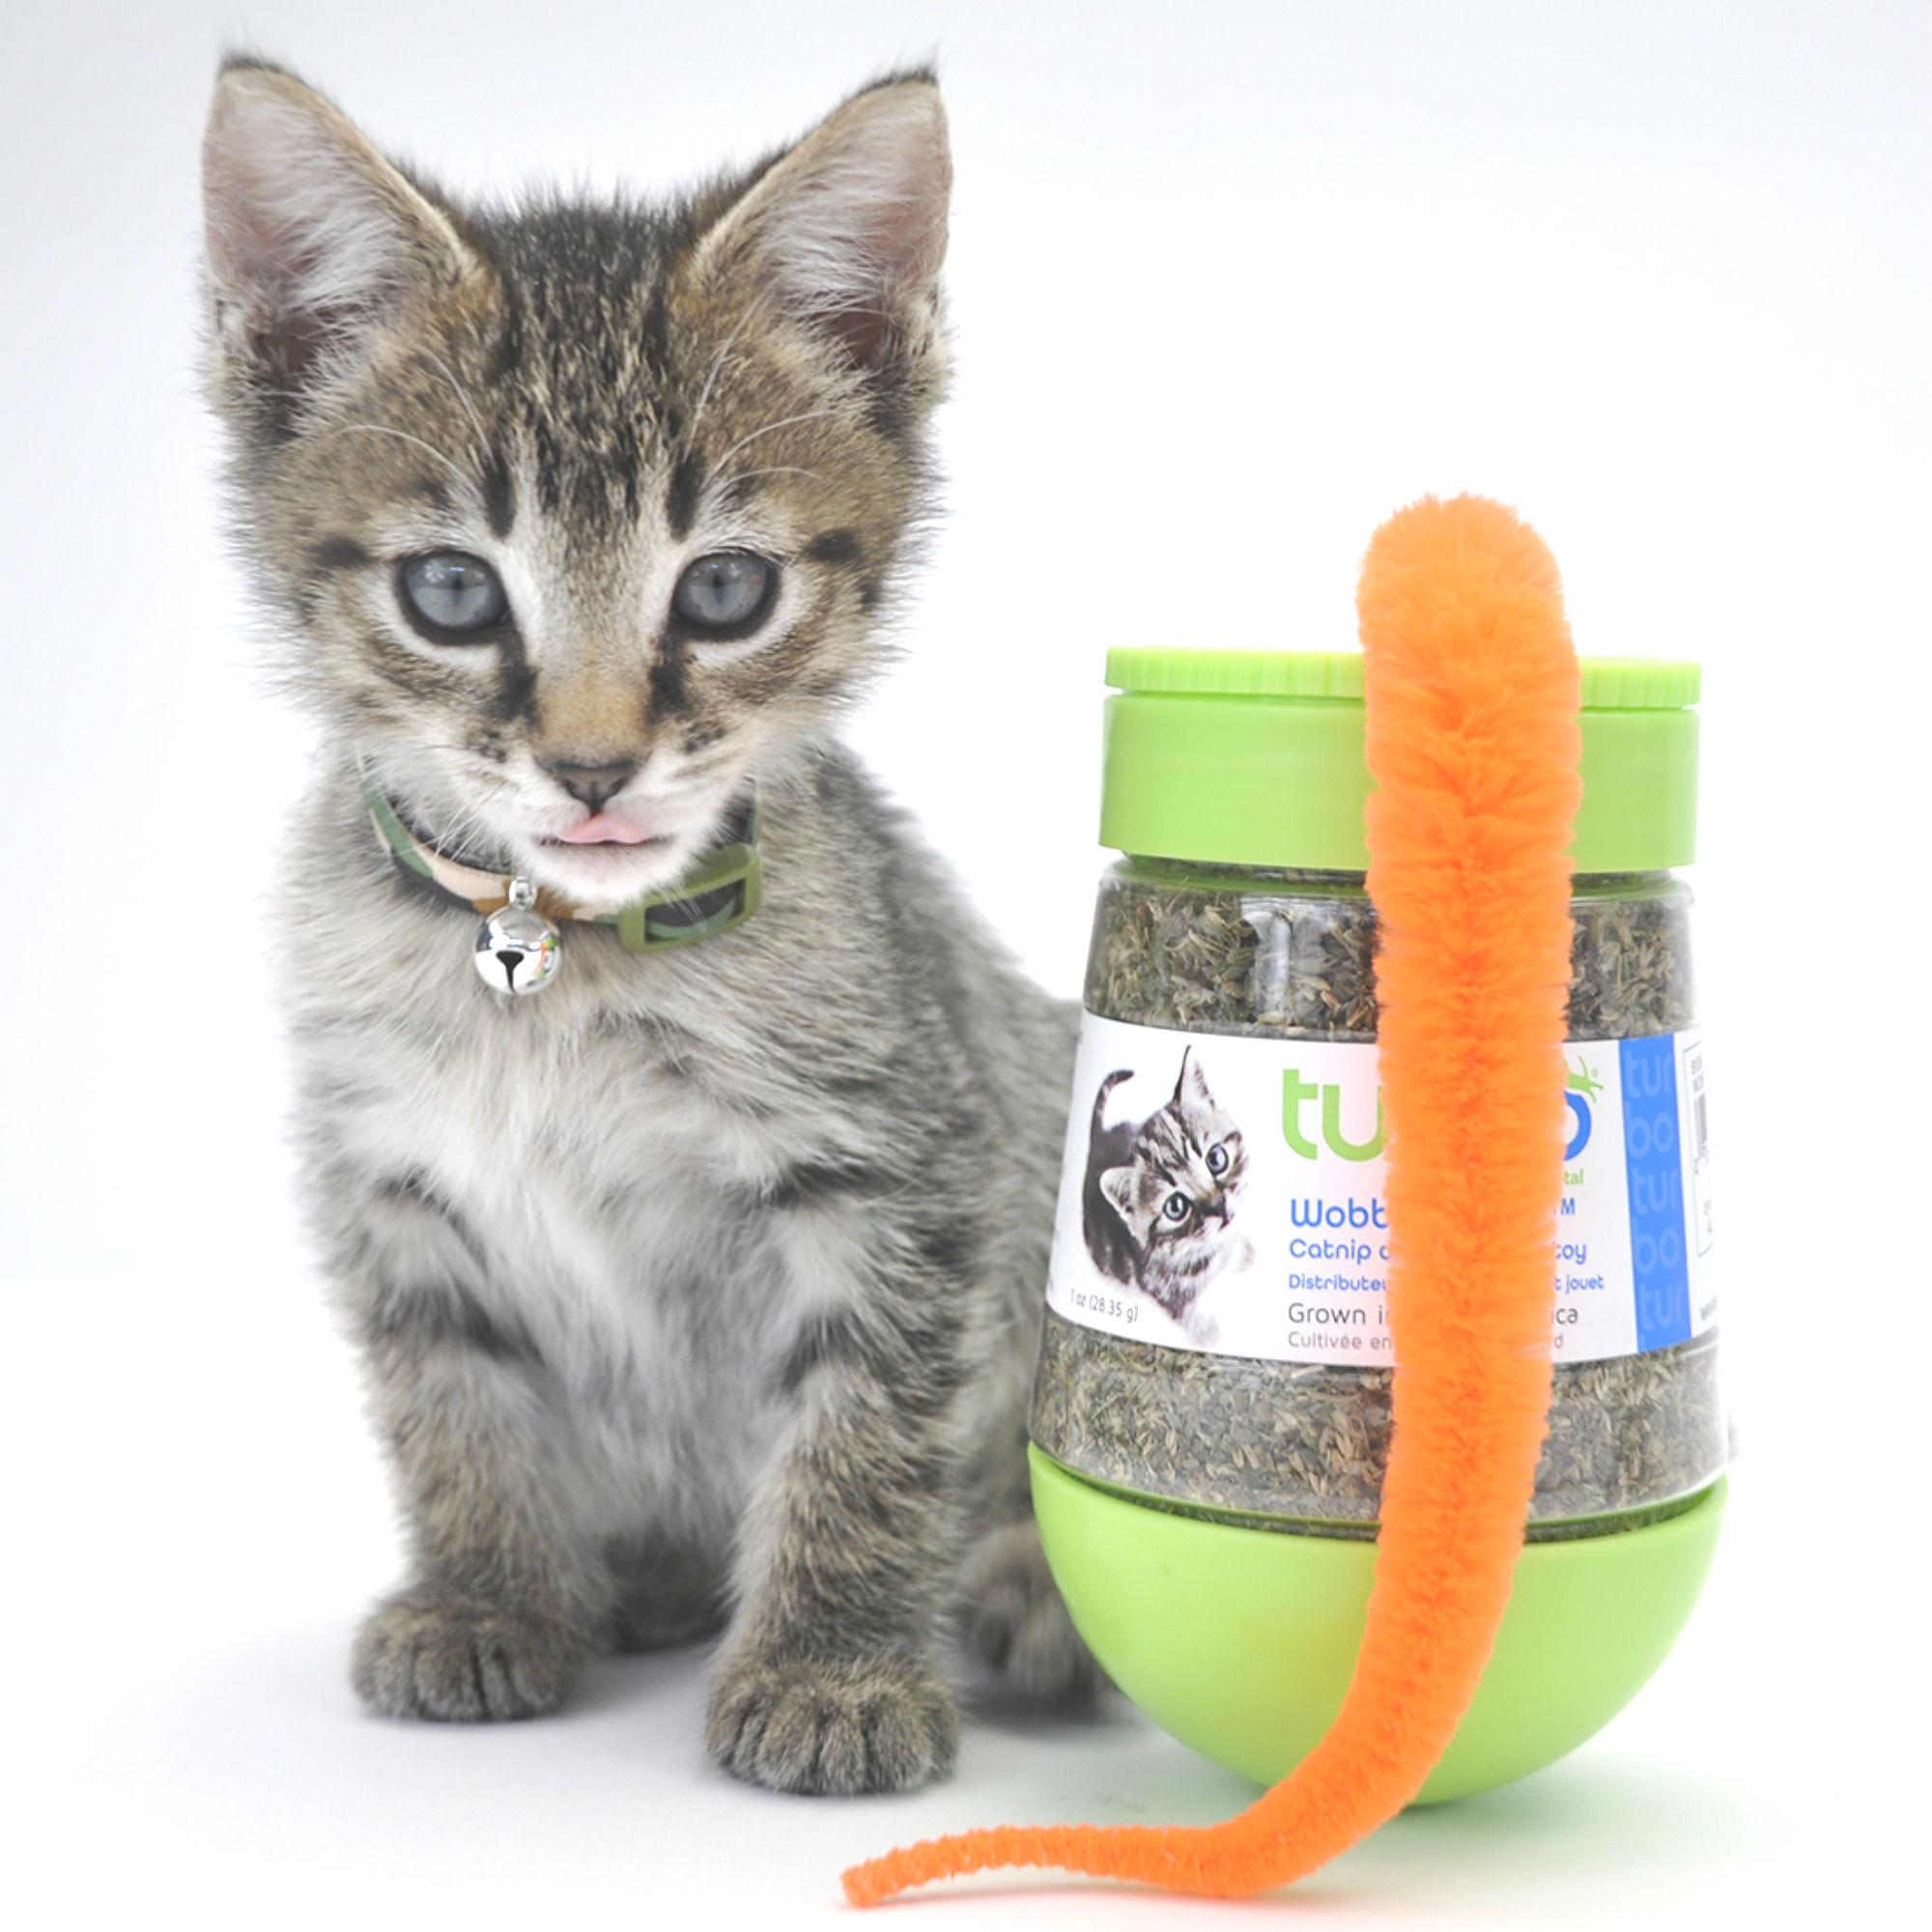 Turbo Wobble Bottle Catnip Cat Toy